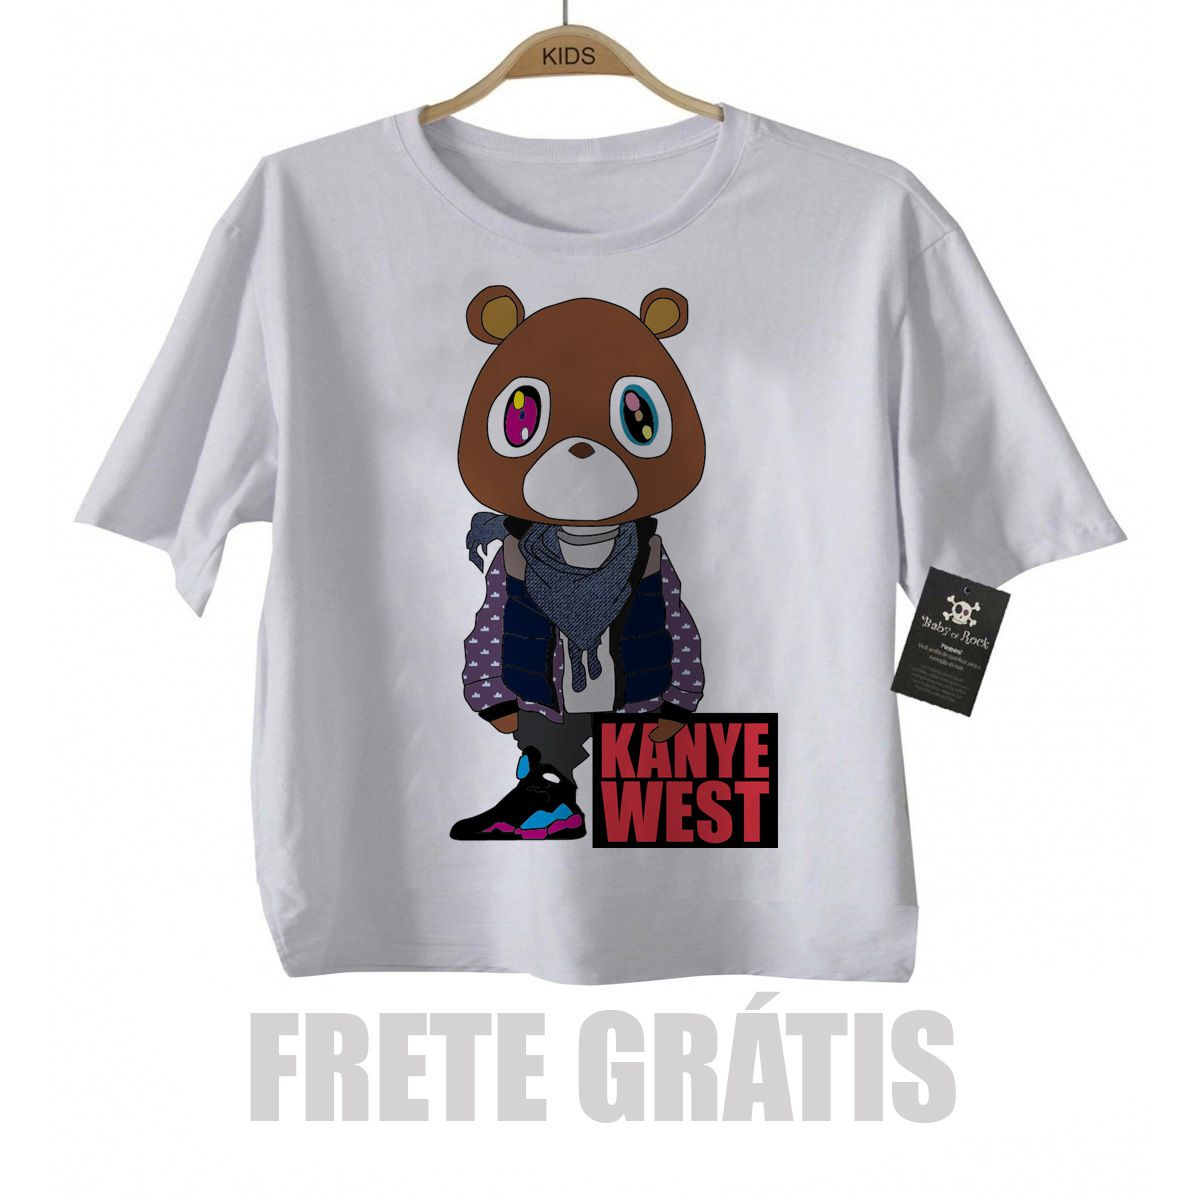 Camiseta Infantil  Rap / Hip hop   Kanye West - White  - Baby Monster S/A